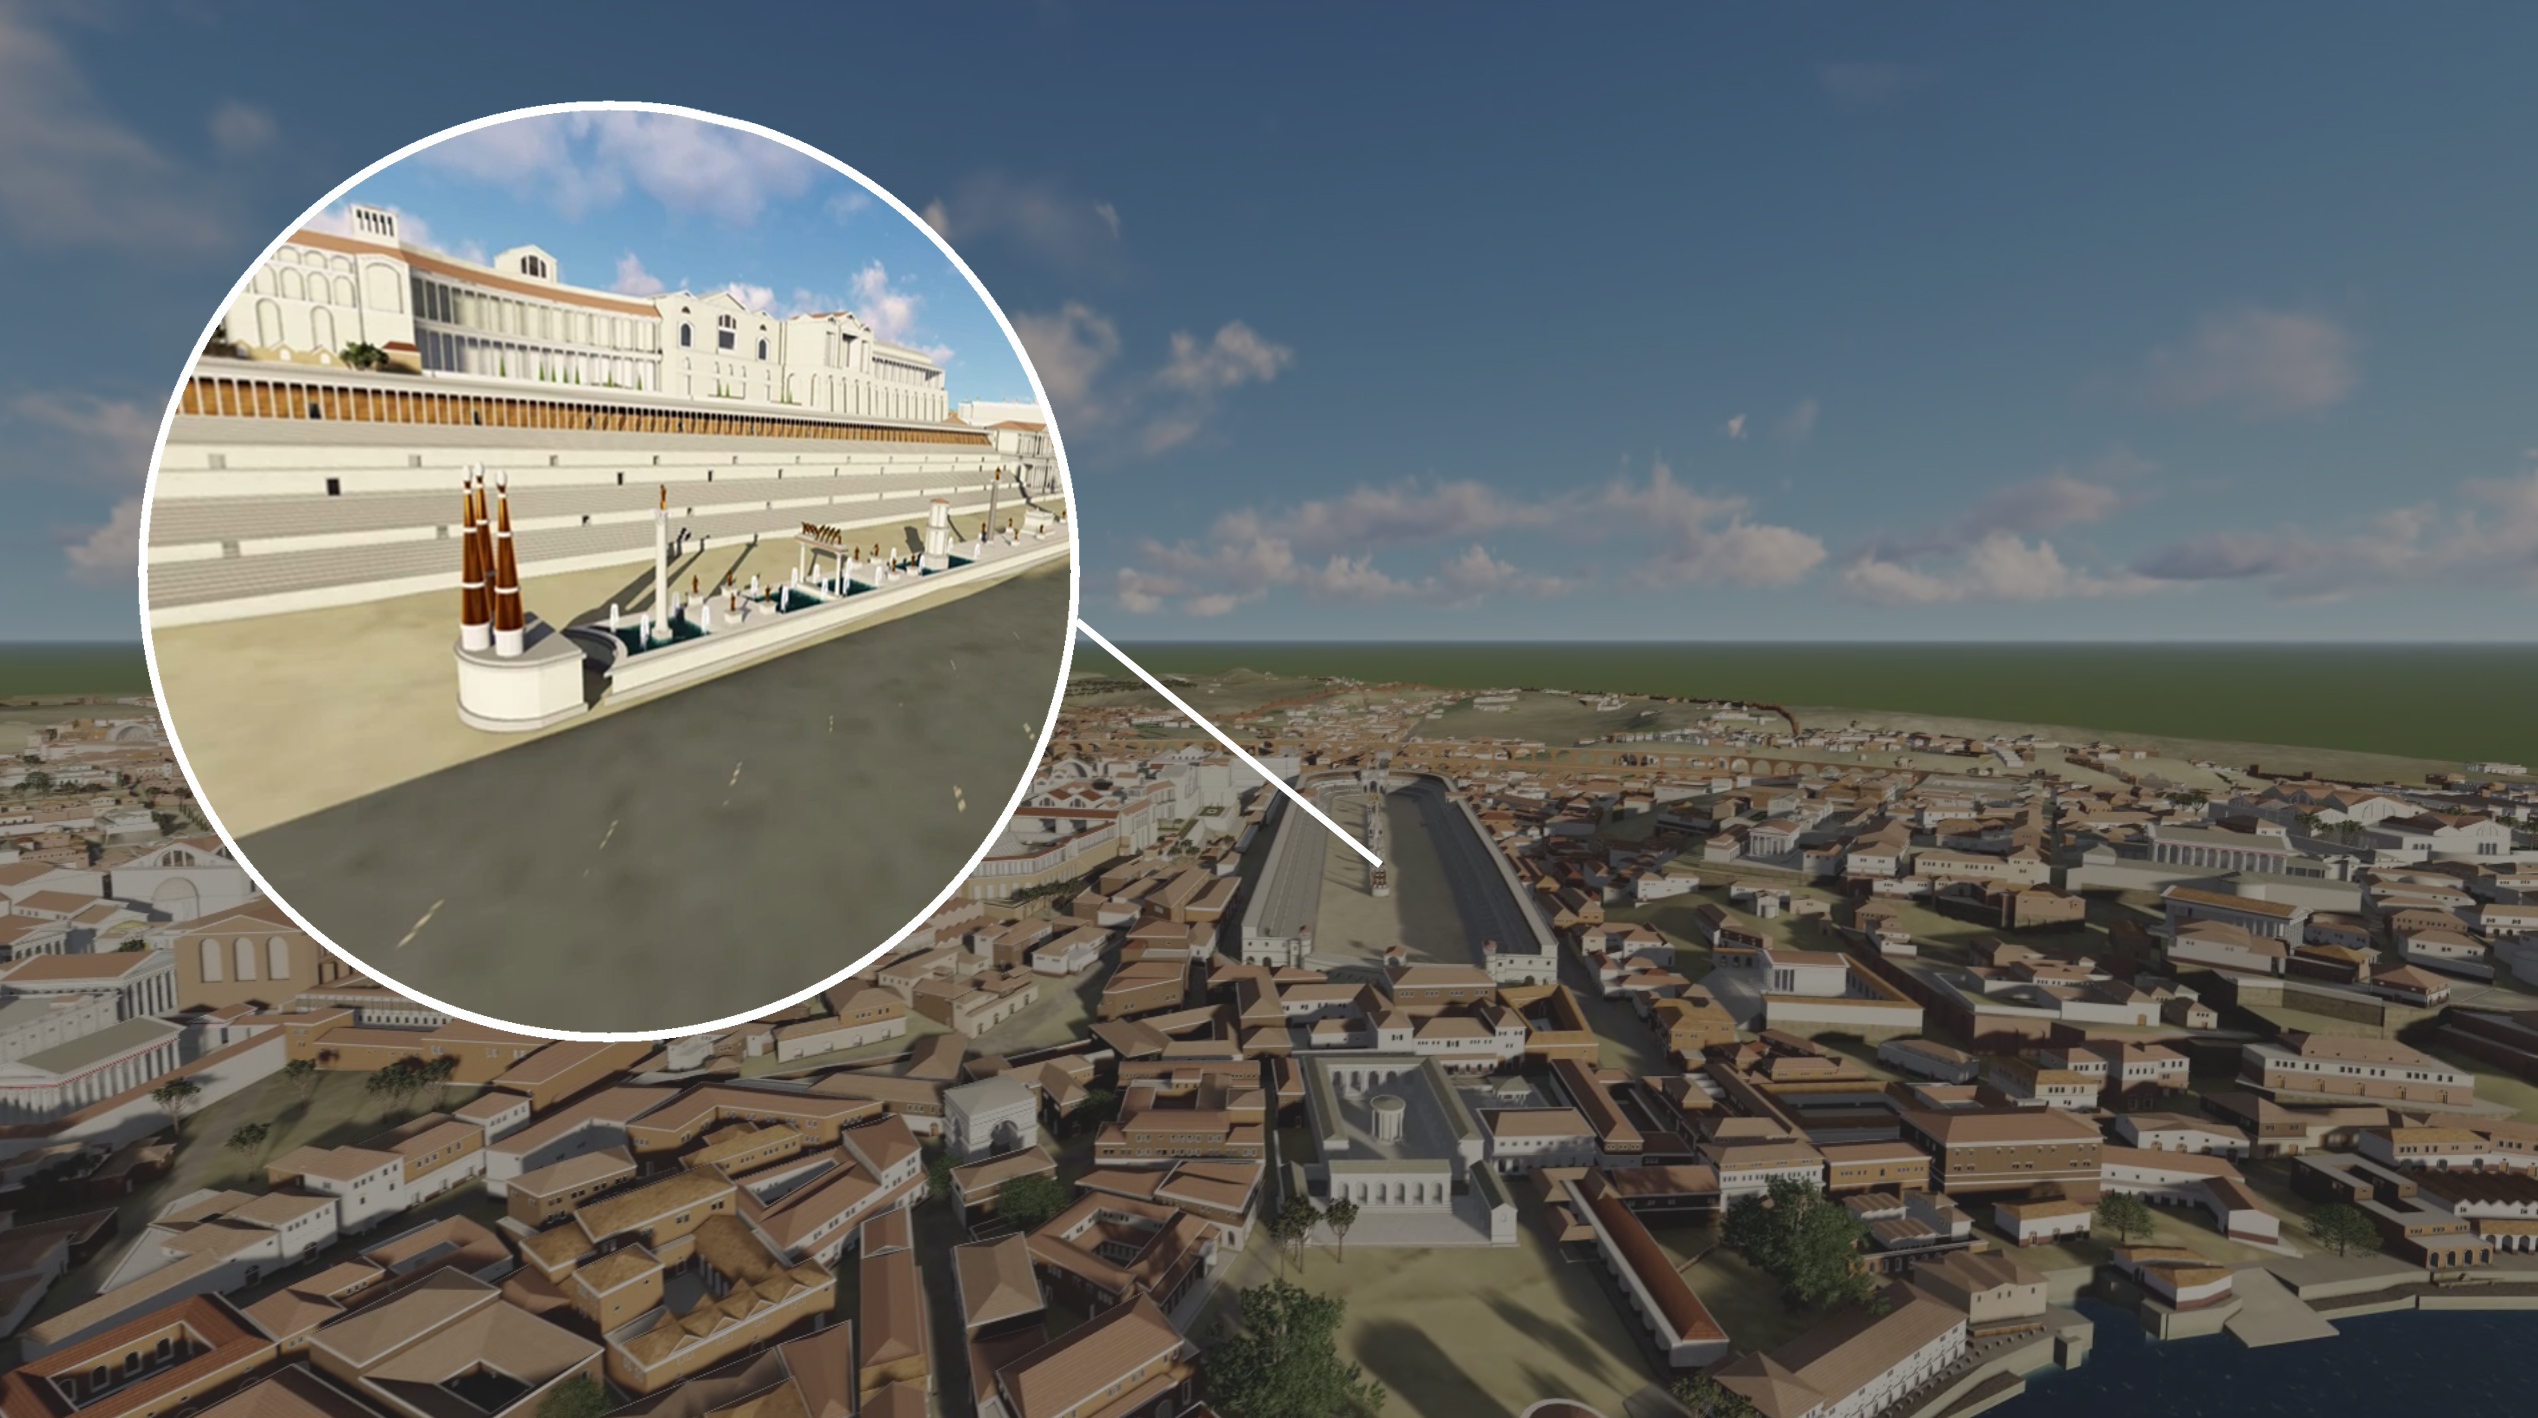 A 3D model of Rome highlighting where the Circus Maximus is located